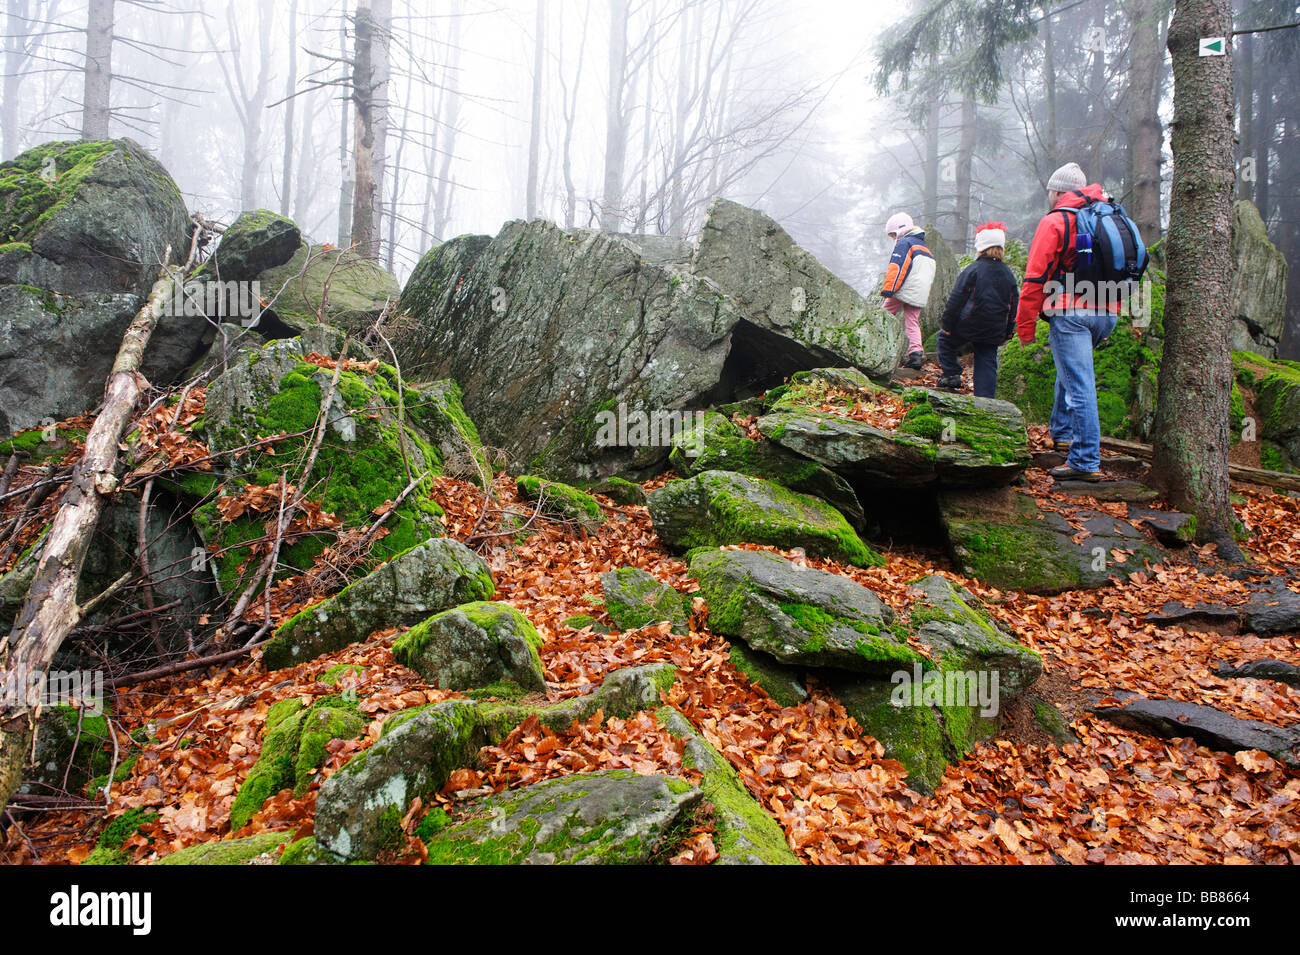 On the track from Waldhaeuser to the Lusen mountain, Bavarian Forest National Park, Lower Bavaria, Germany, Europe - Stock Image